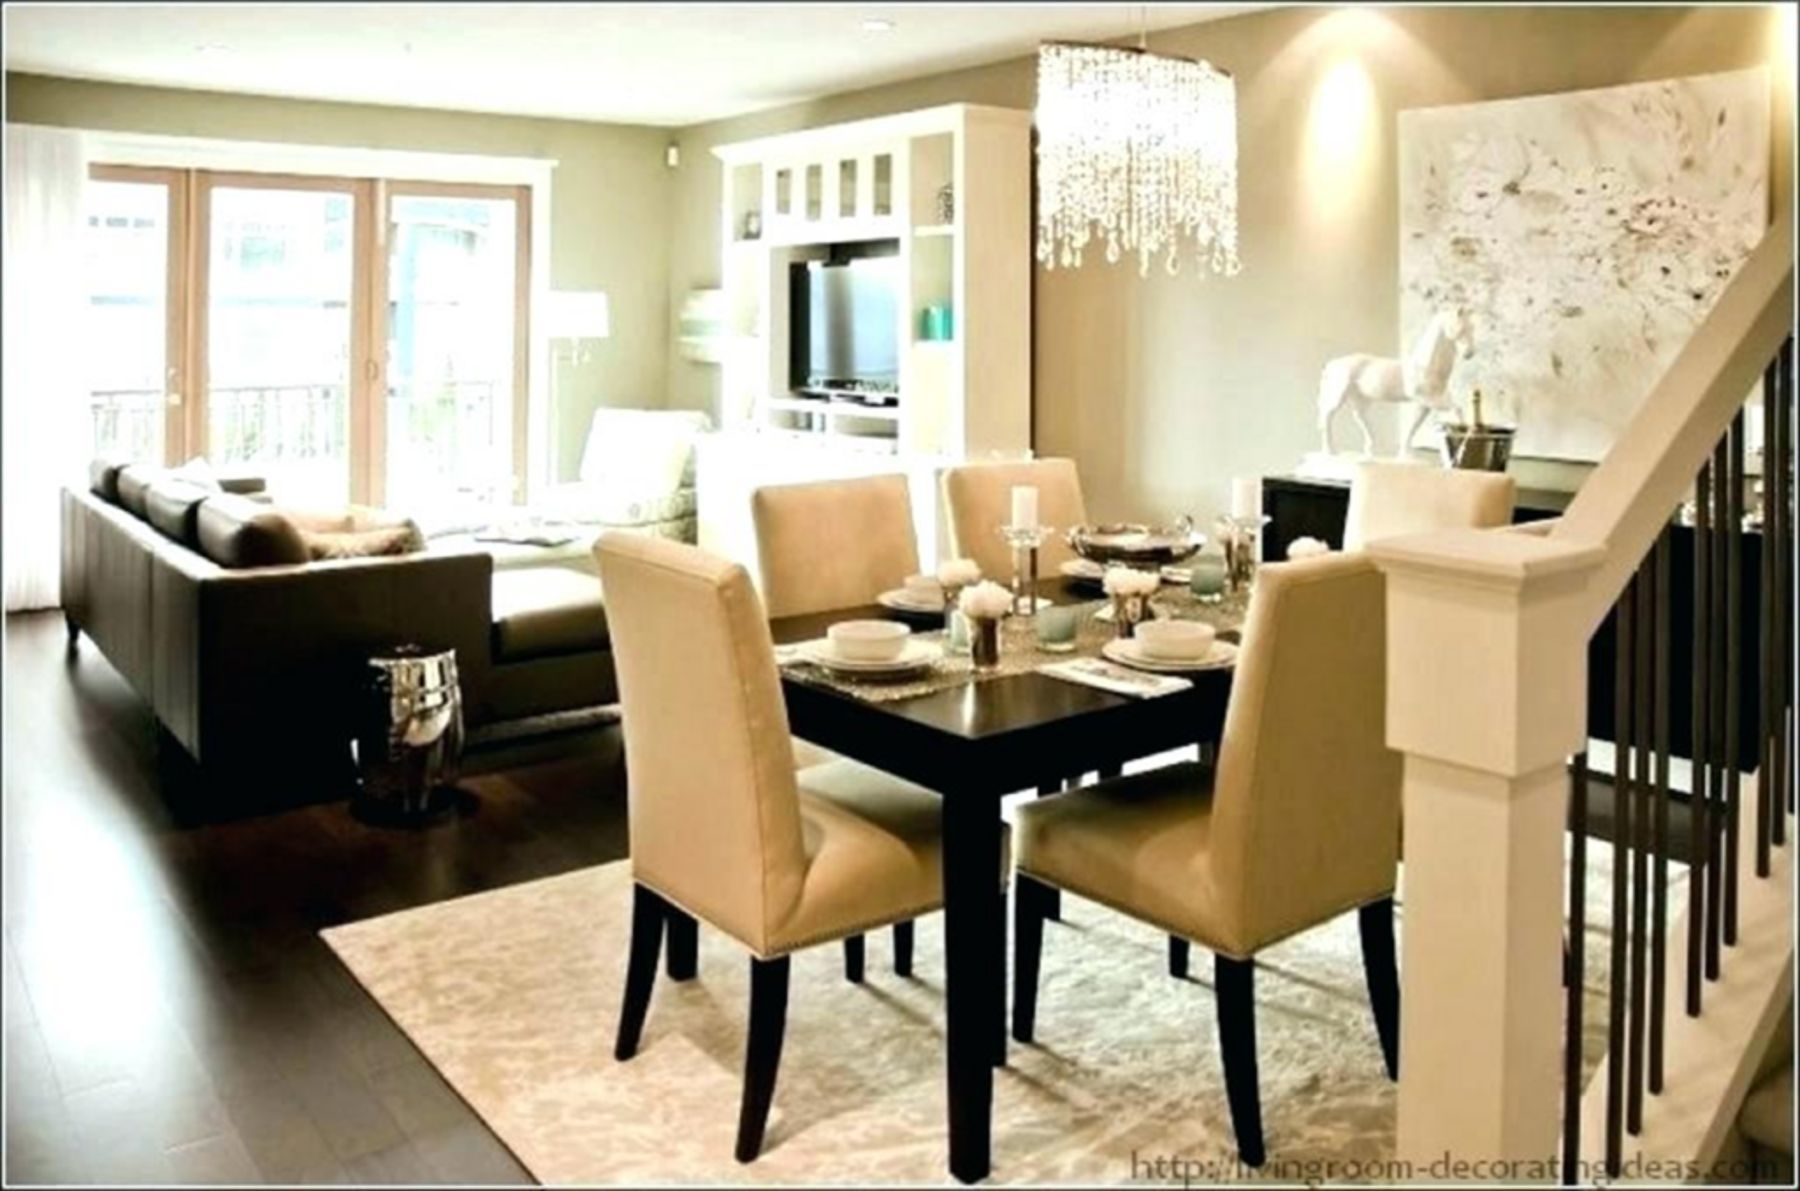 12 Incredible Dining Room Design And Decoration Ideas For Tiny House Inspiration Living Room Dining Room Combo Dining Room Small Living Dining Room